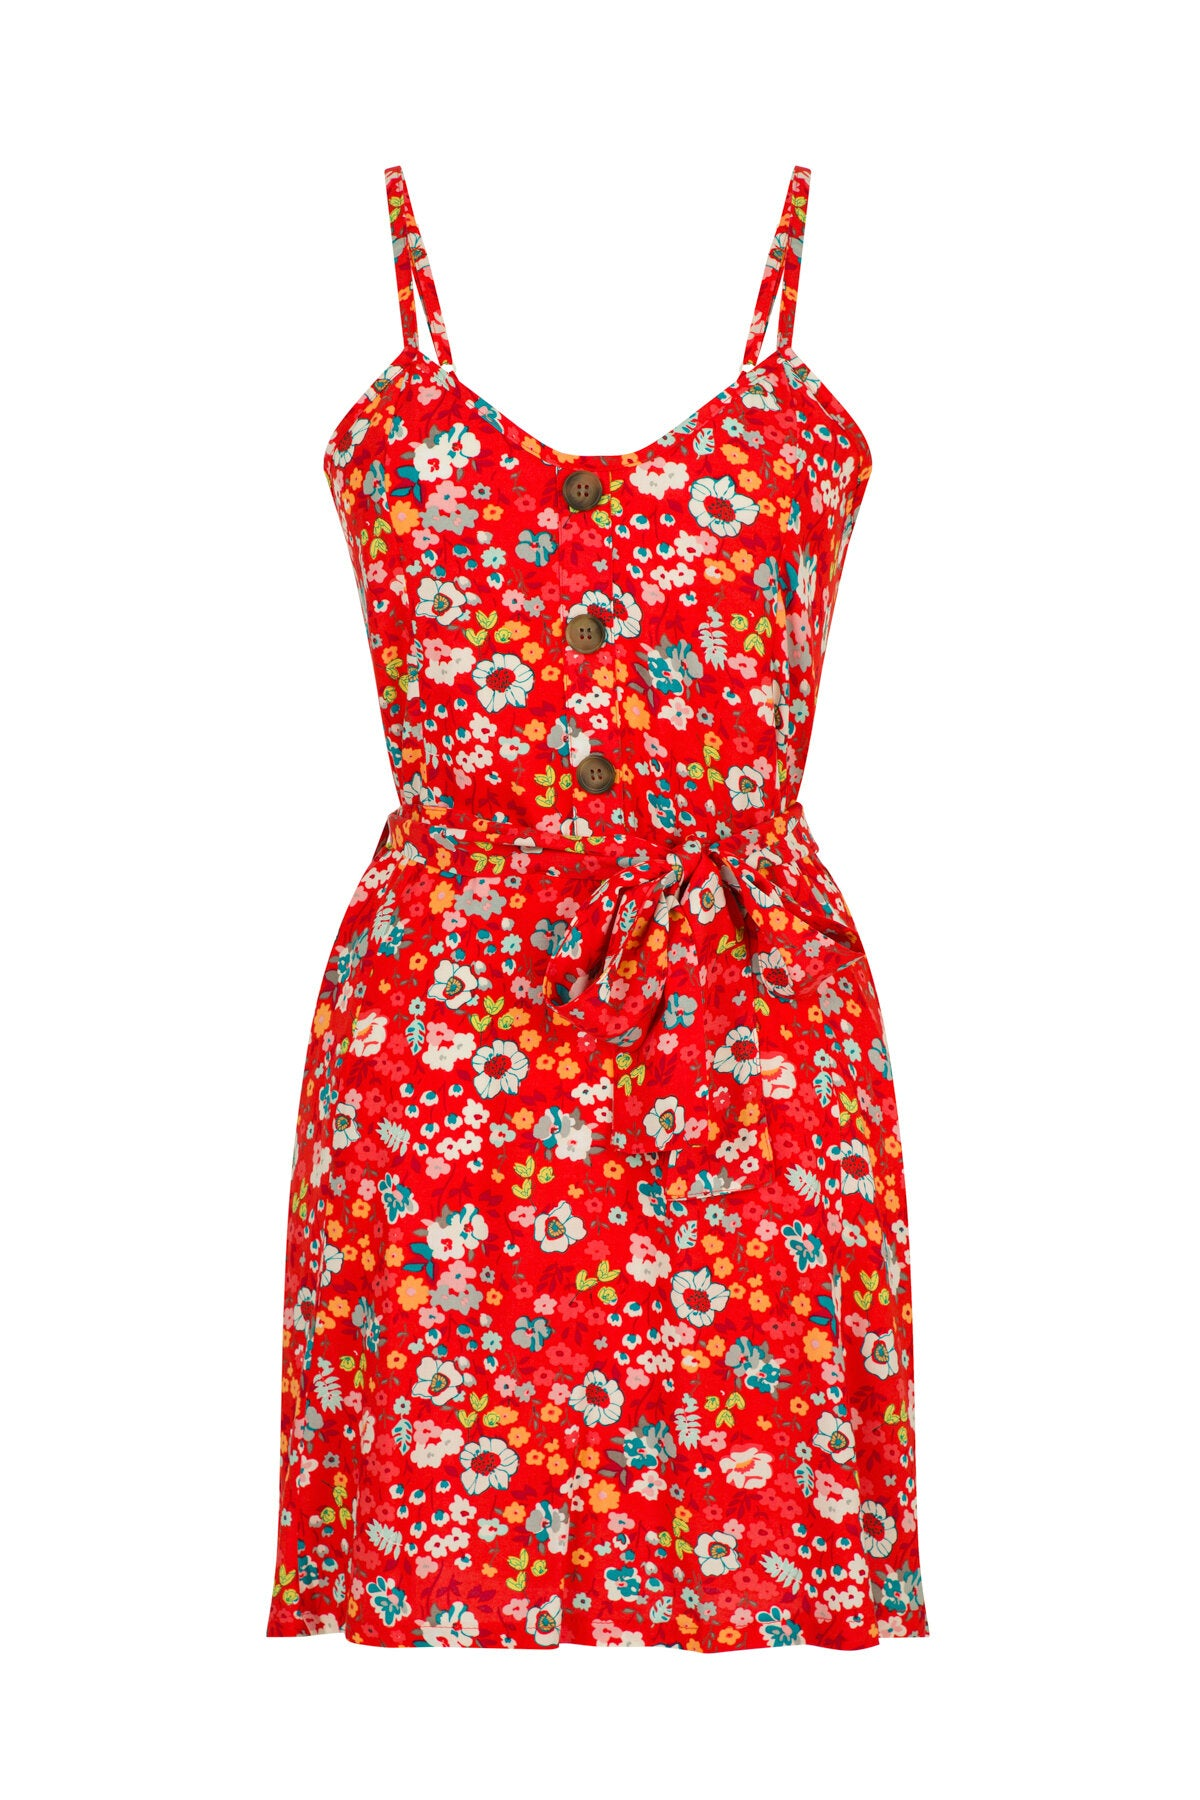 FIT & FLARE CAMI MINI DRESS IN FLORAL RED